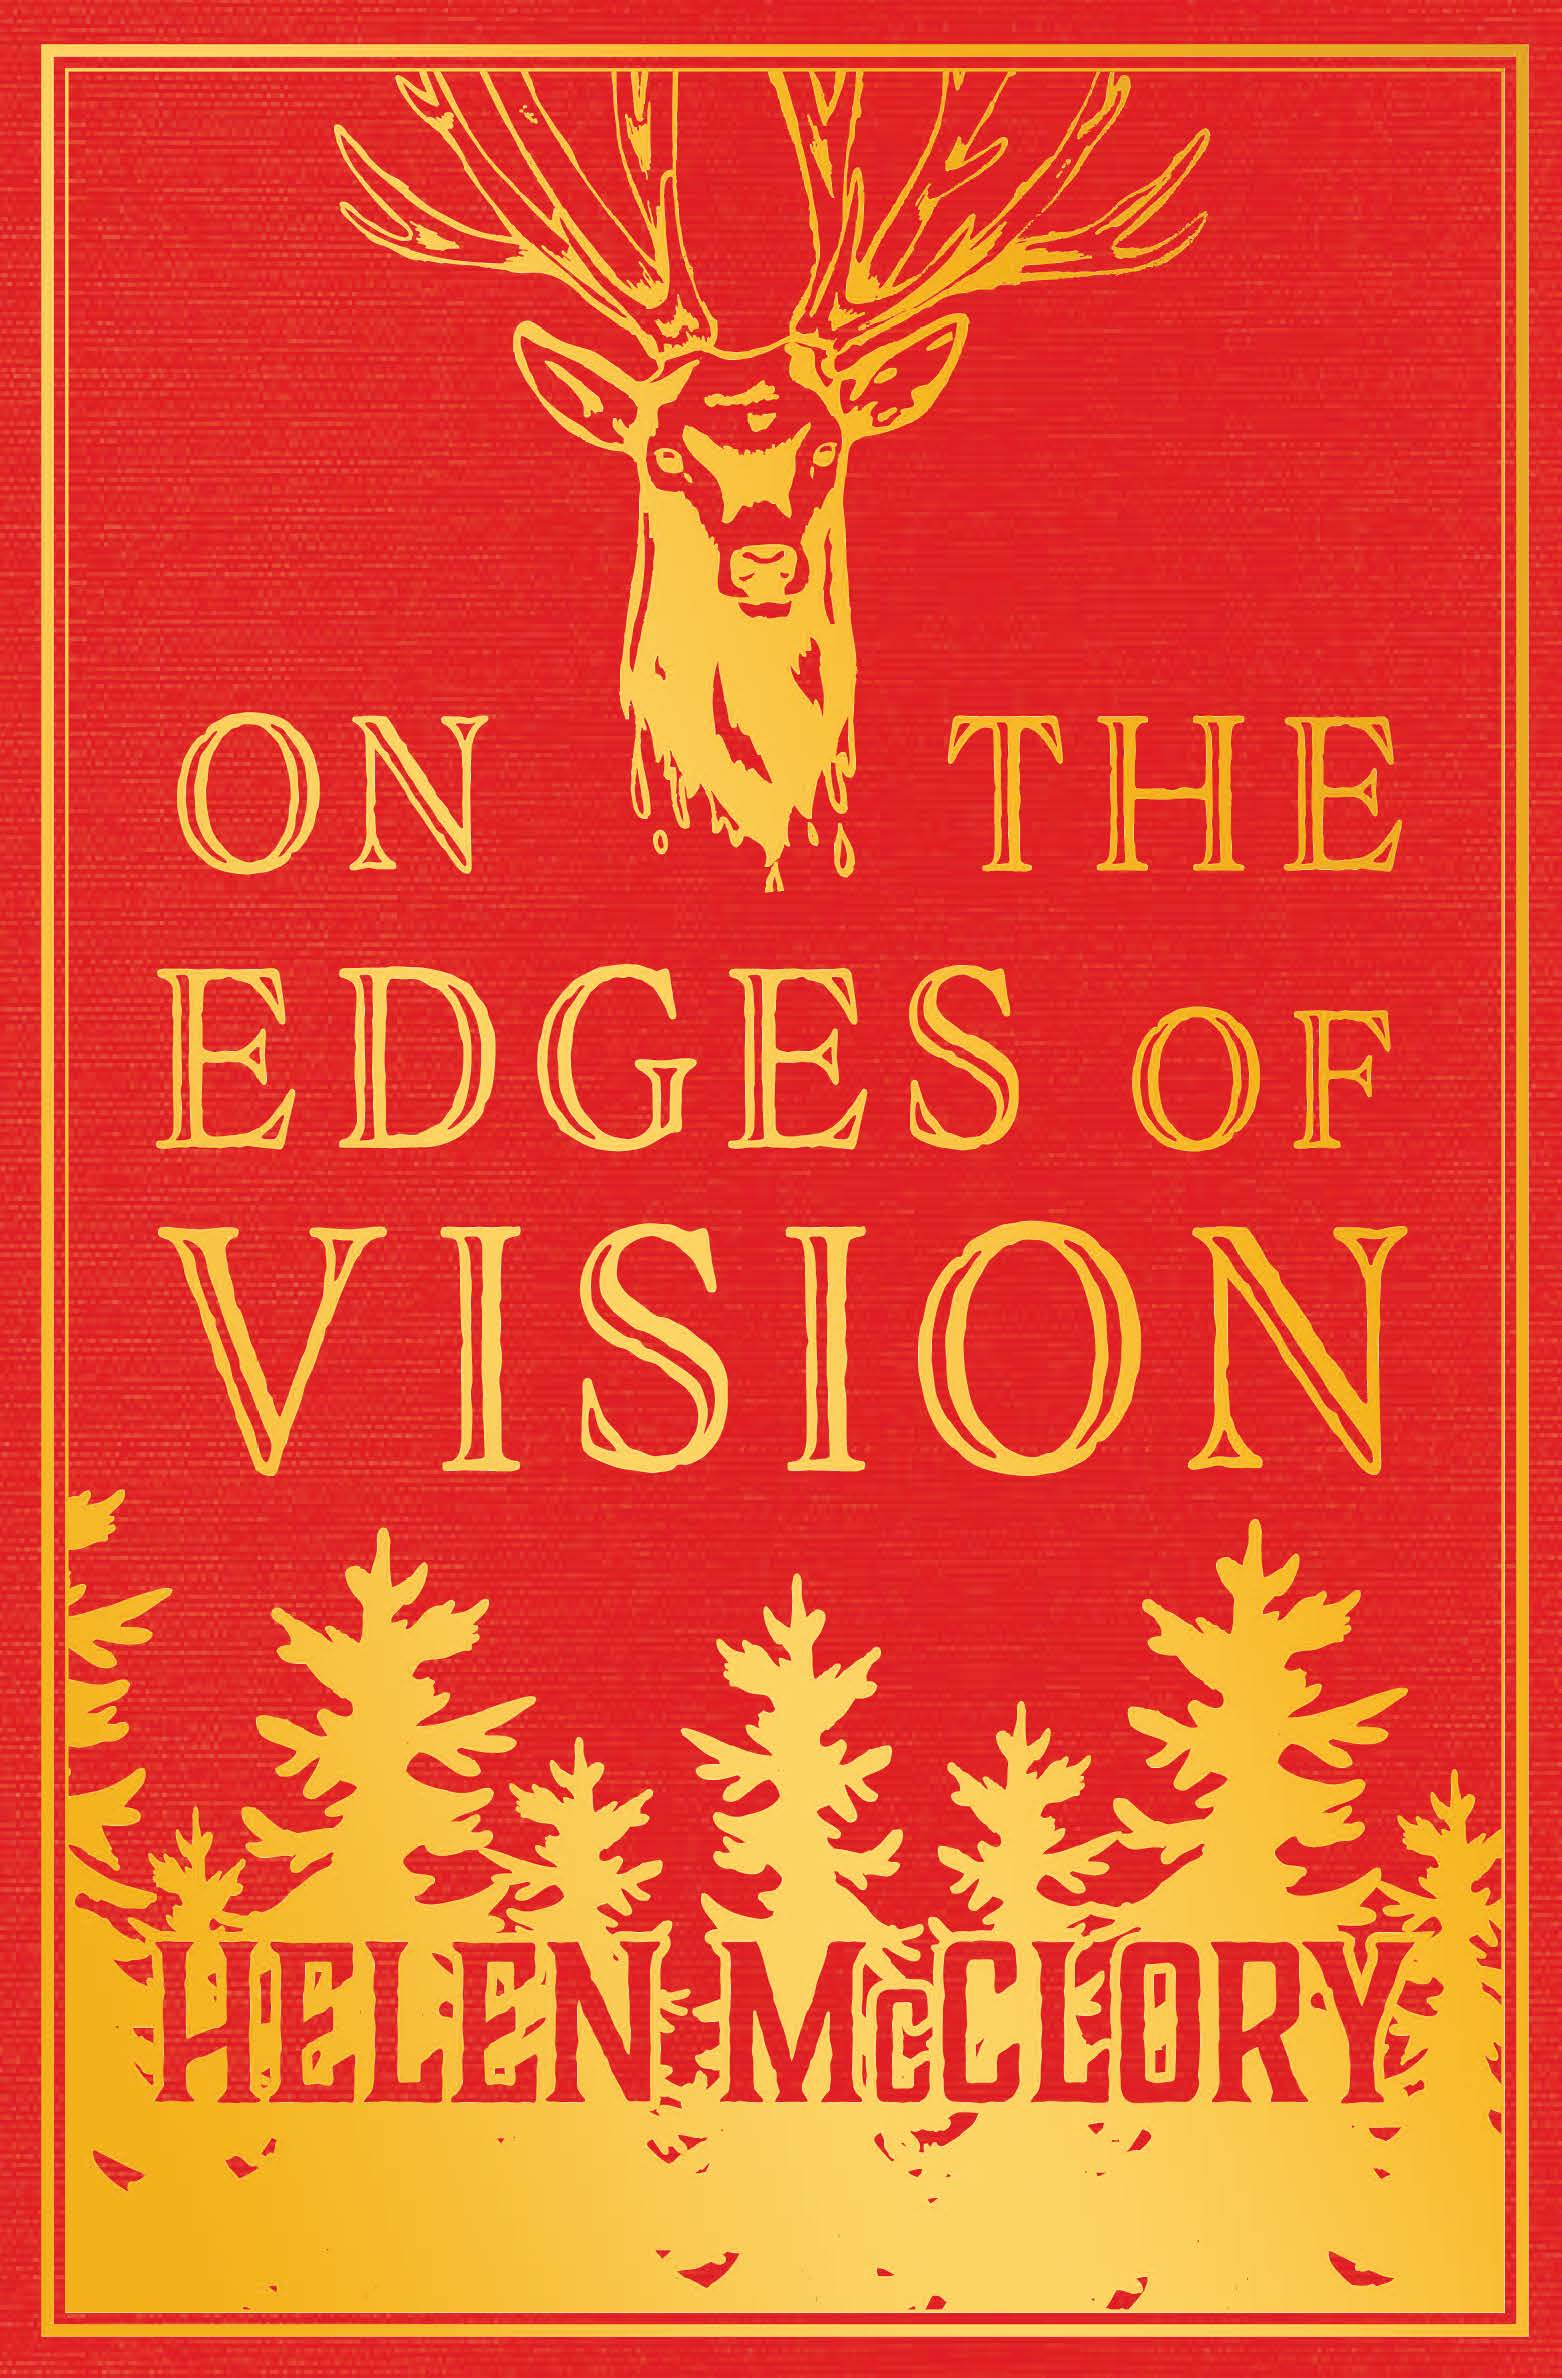 ON THE EDGES OF VISION   'Angela Carter for the millennial generation' - Meena Kandasamy   In On the Edges of Vision, unease sounds itself in the language of legend. Images call on memory, on the monstrous self. In Helen McClory's award-winning, daring debut collection, the skin prickles against sweeps of light or darkness, the fantastic or the frightful; deep water, dark woods, or scattered flesh in desert sand.  Whether telling of a boy cyclops or a pretty dead girl, drowned sailors or the devil himself, each story draws the reader towards not bleakness but a tale half-told, a truth half-true: that the monster is human, and only wants to reach out and take you by the hand.